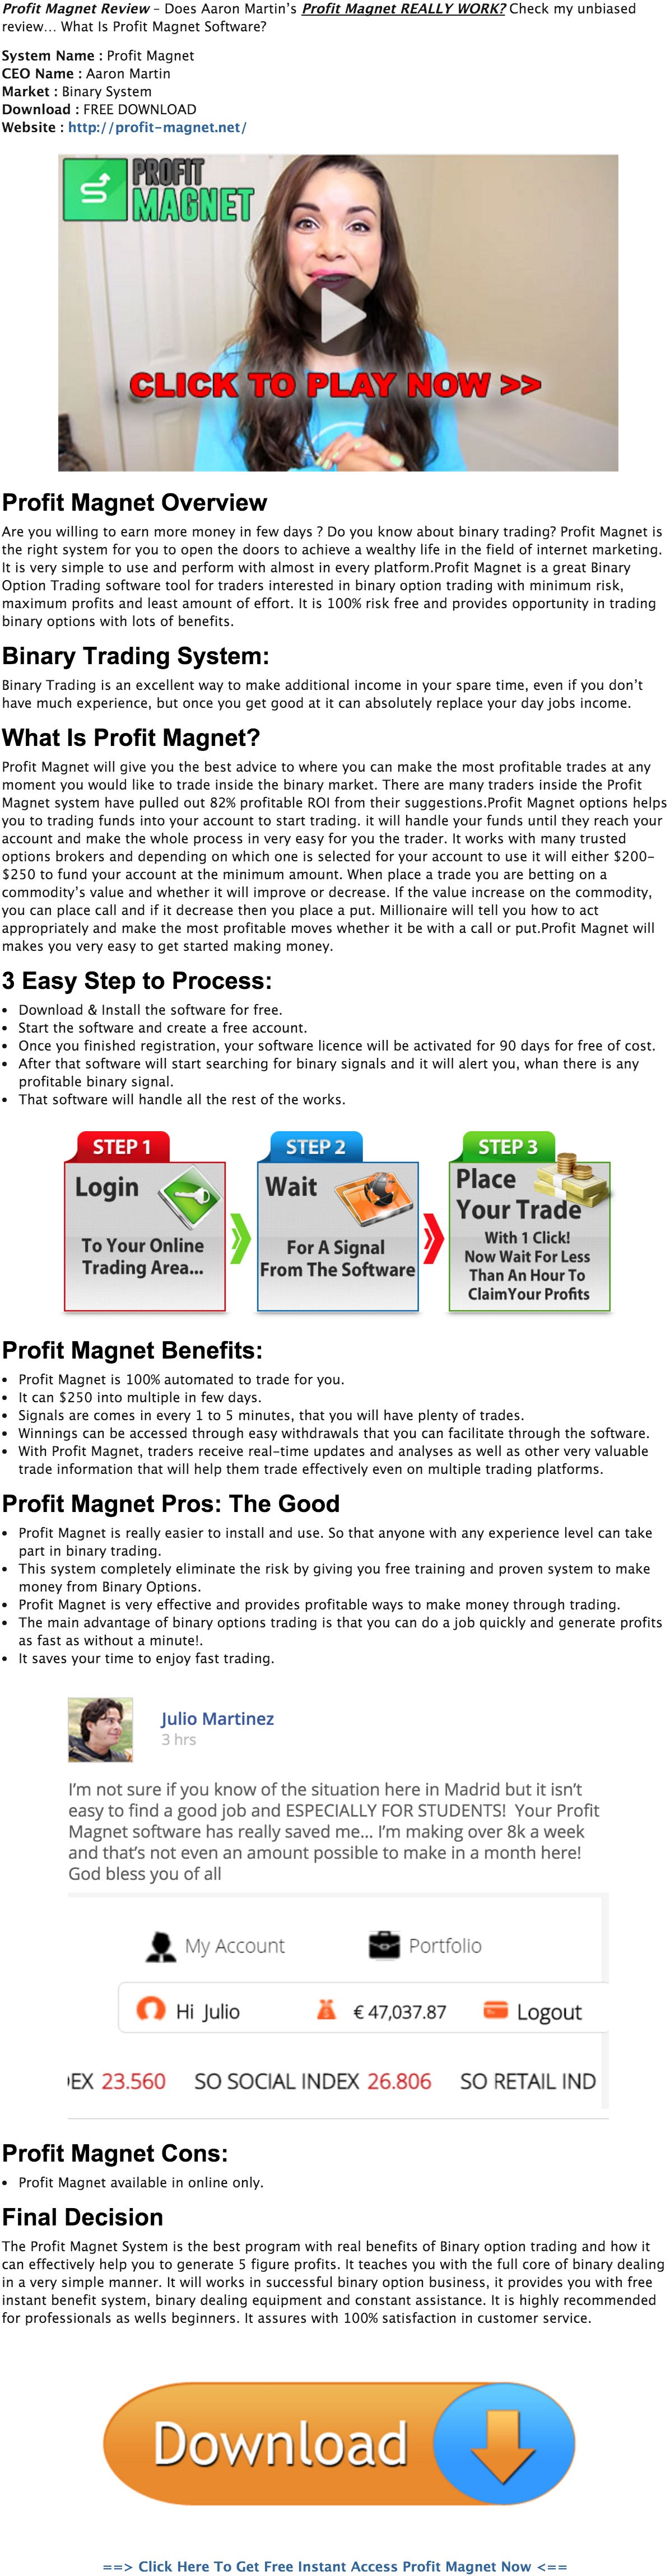 binary options magnet scams on the internet